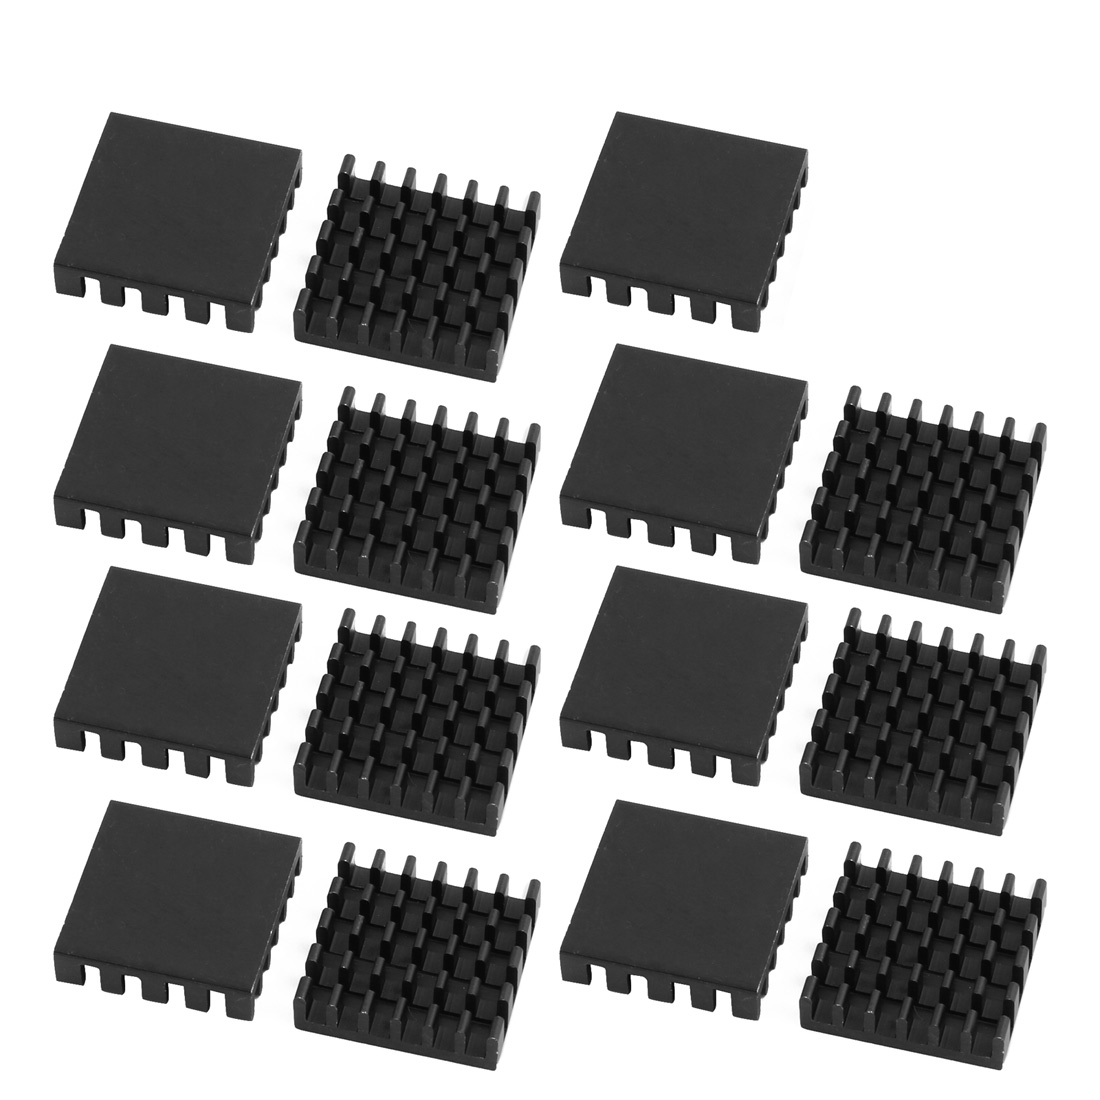 15Pcs 19mm x 19mm x 5mm Aluminum Heatsink Heat Diffuse Cooling Fin Black